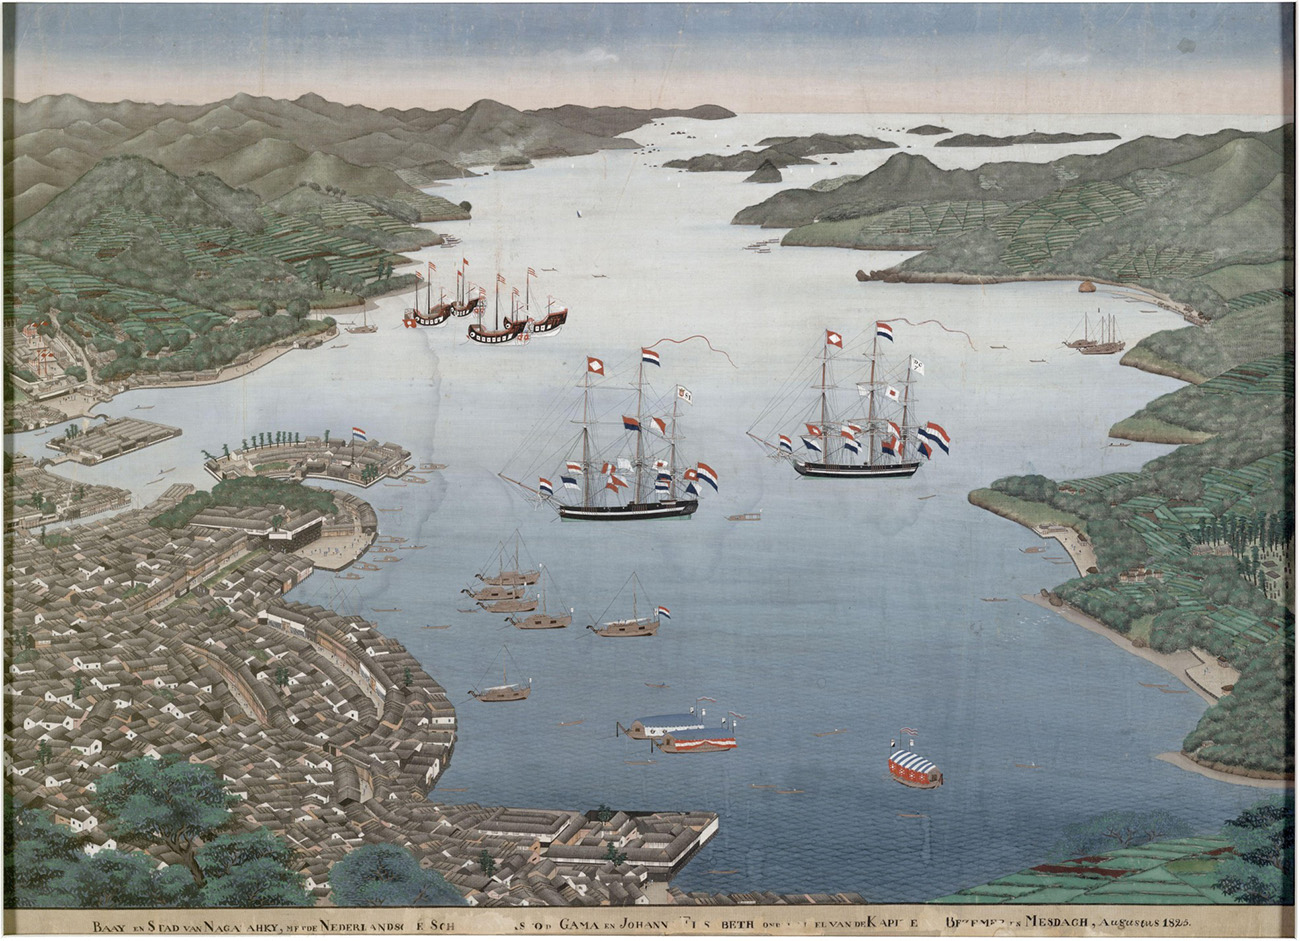 An antique print with some water stains showing a panoramic view of a bay with a variety of early nineteenth century vessels.